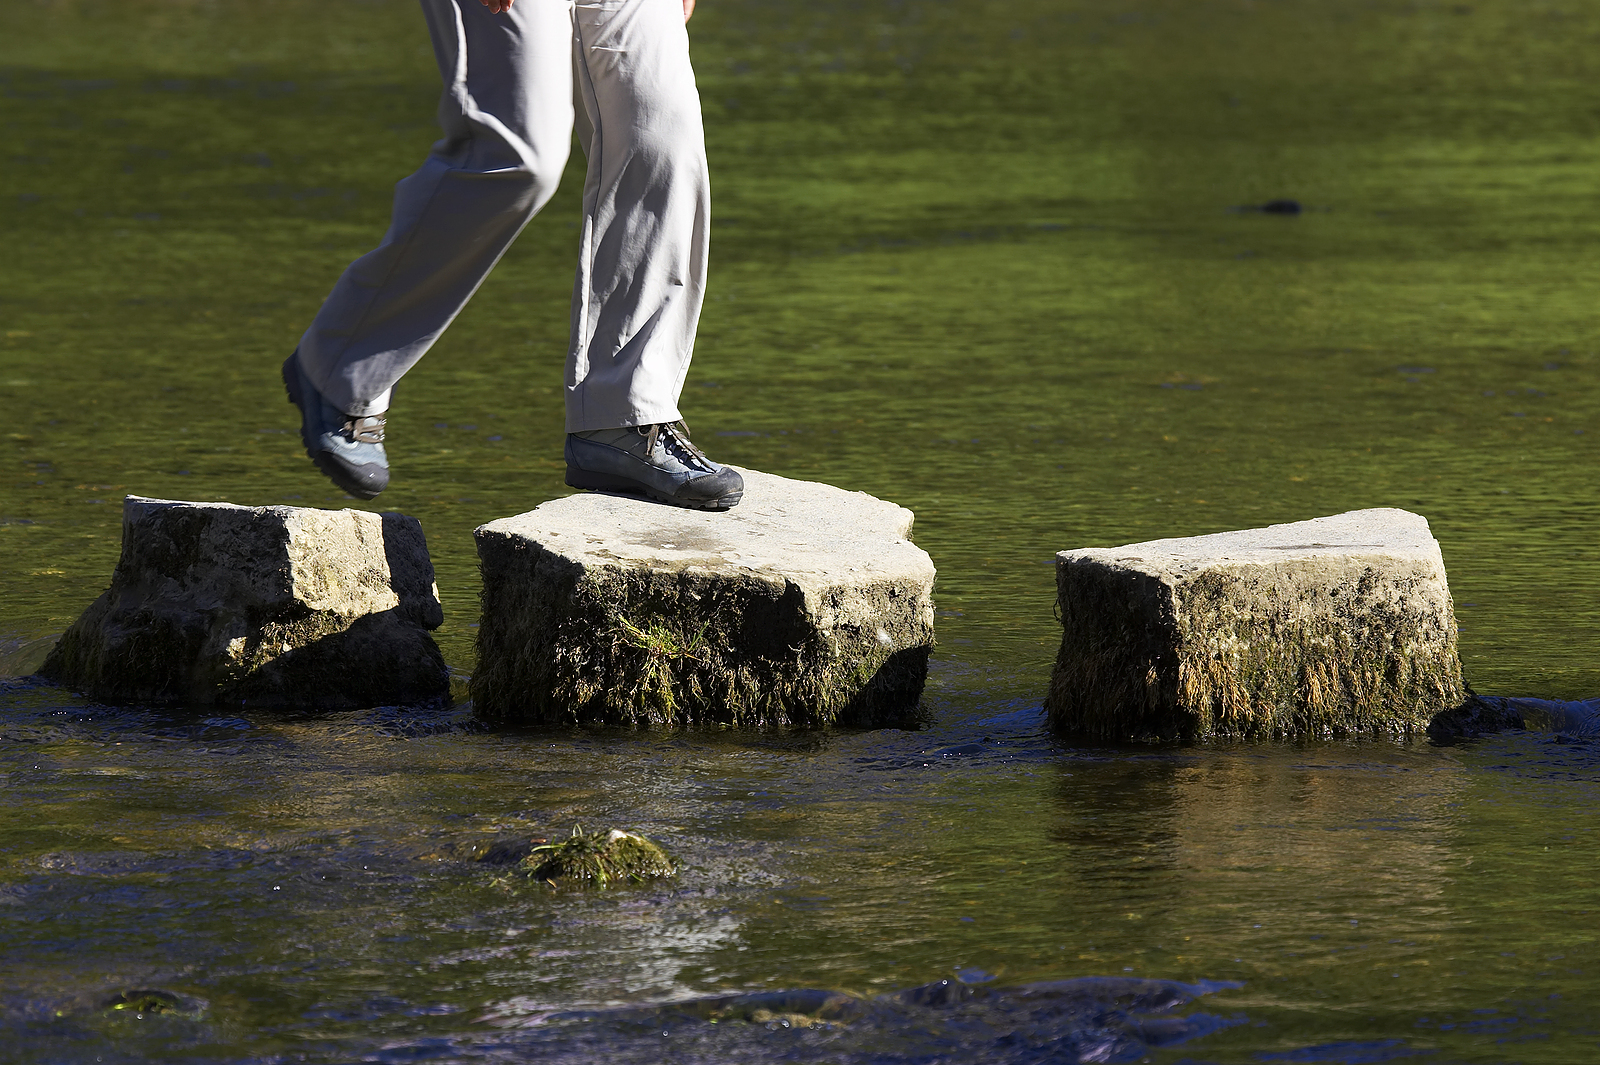 stepping stones on the journey UIUIUJR